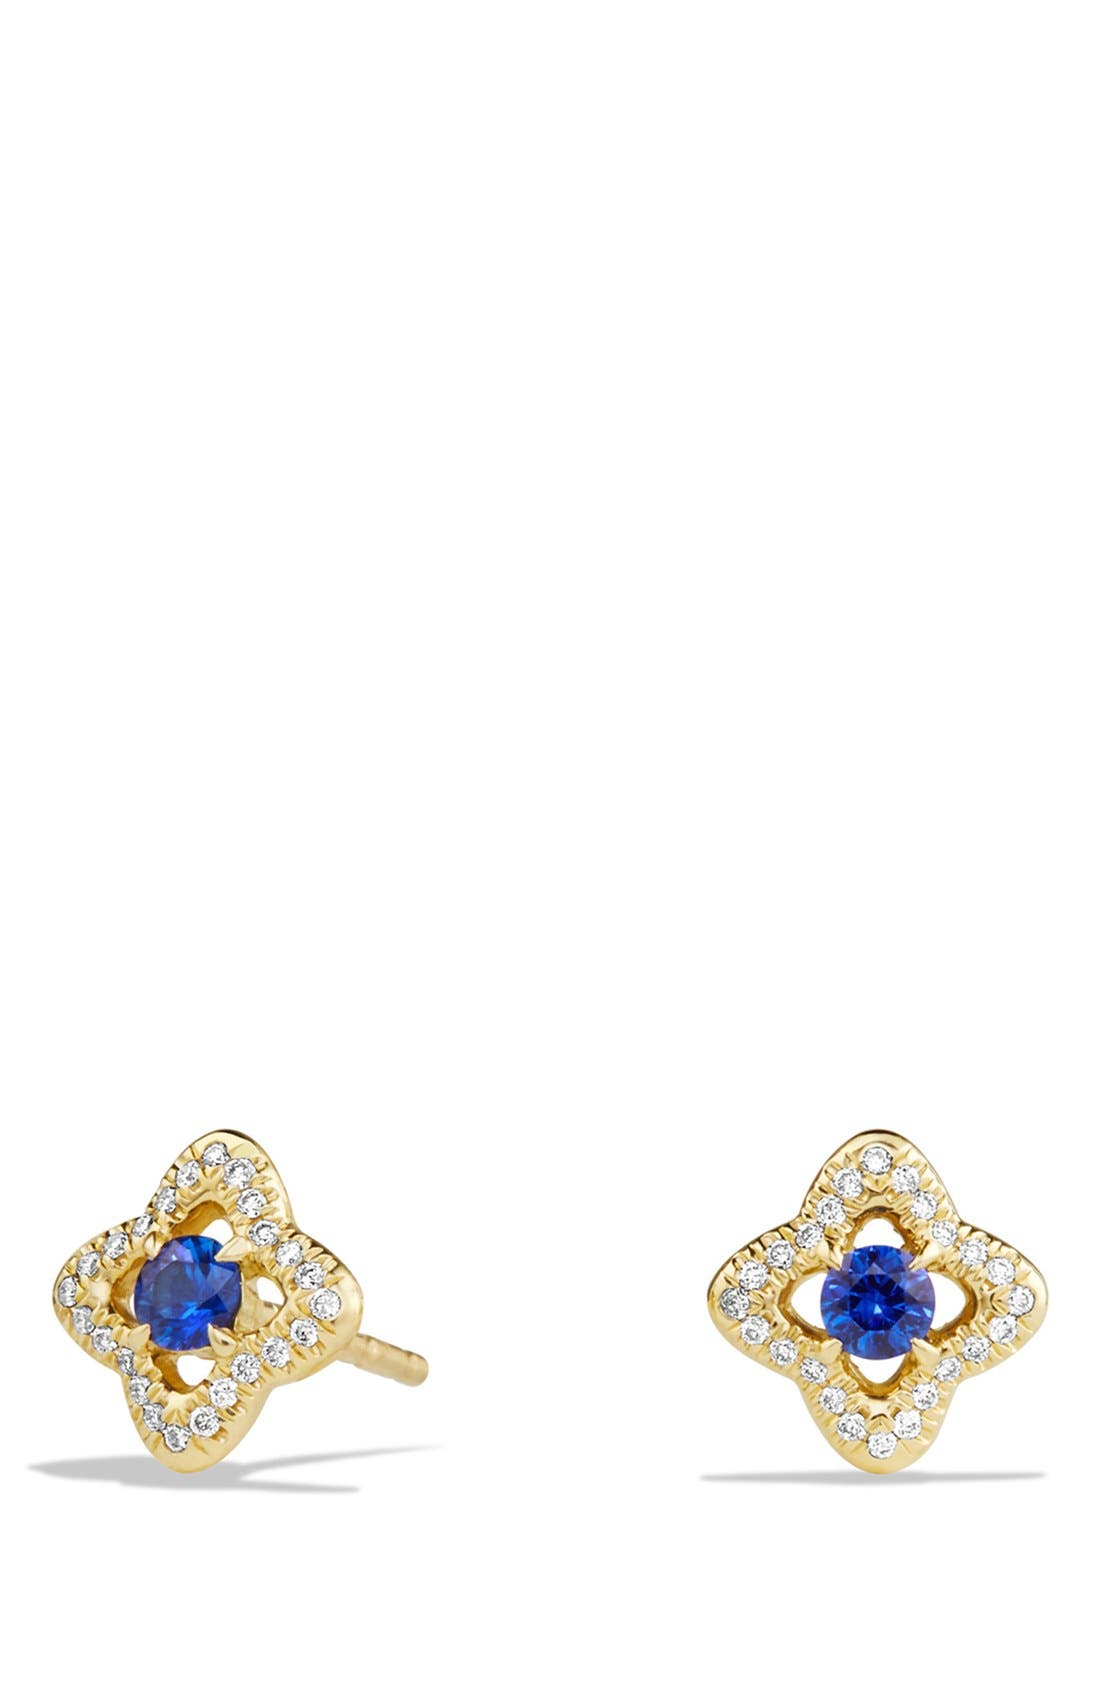 'Venetian Quatrefoil' Earrings with Precious Stones and Diamonds in 18K Gold,                             Main thumbnail 1, color,                             Blue Sapphire